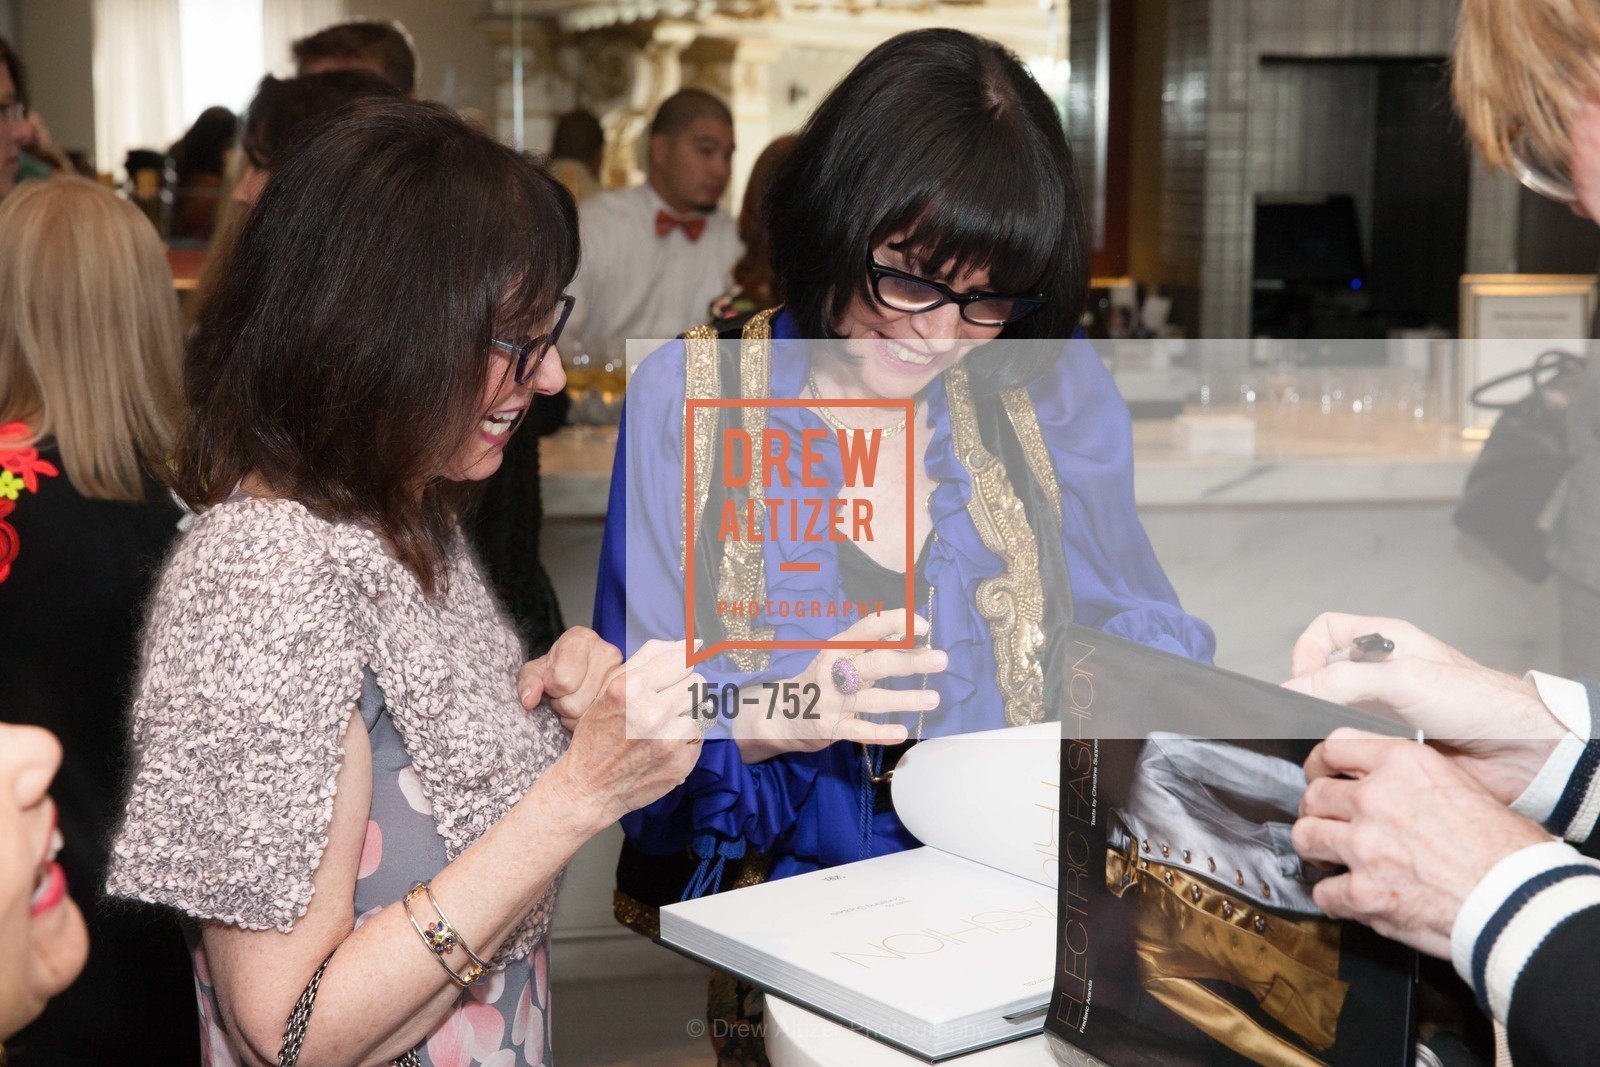 Christine Suppes, Electric Fashion Book Signing with Christine Suppes & Ken Downing at THE ROTUNDA, NEIMAN MARCUS, US, May 27th, 2015,Drew Altizer, Drew Altizer Photography, full-service agency, private events, San Francisco photographer, photographer california